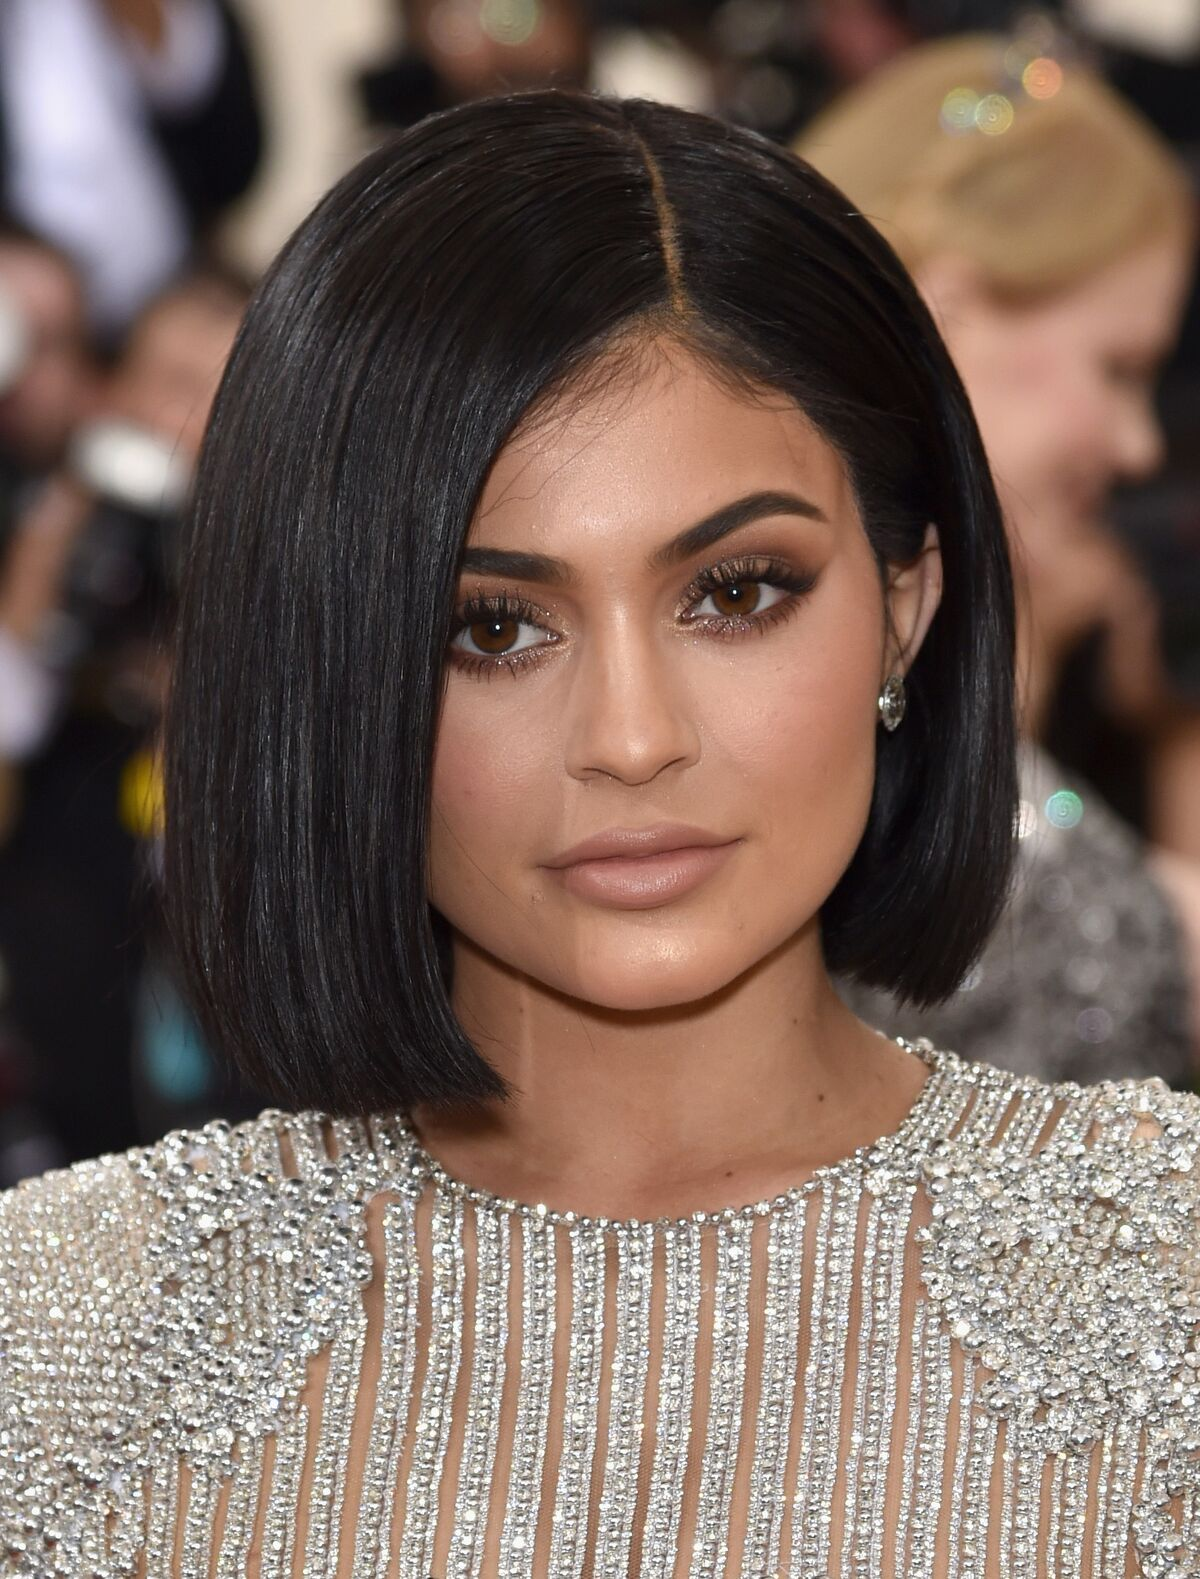 """Kylie Jenner attends the """"Manus x Machina: Fashion In An Age Of Technology"""" Costume Institute Gala at Metropolitan Museum of Art on May 2, 2016 in New York City 